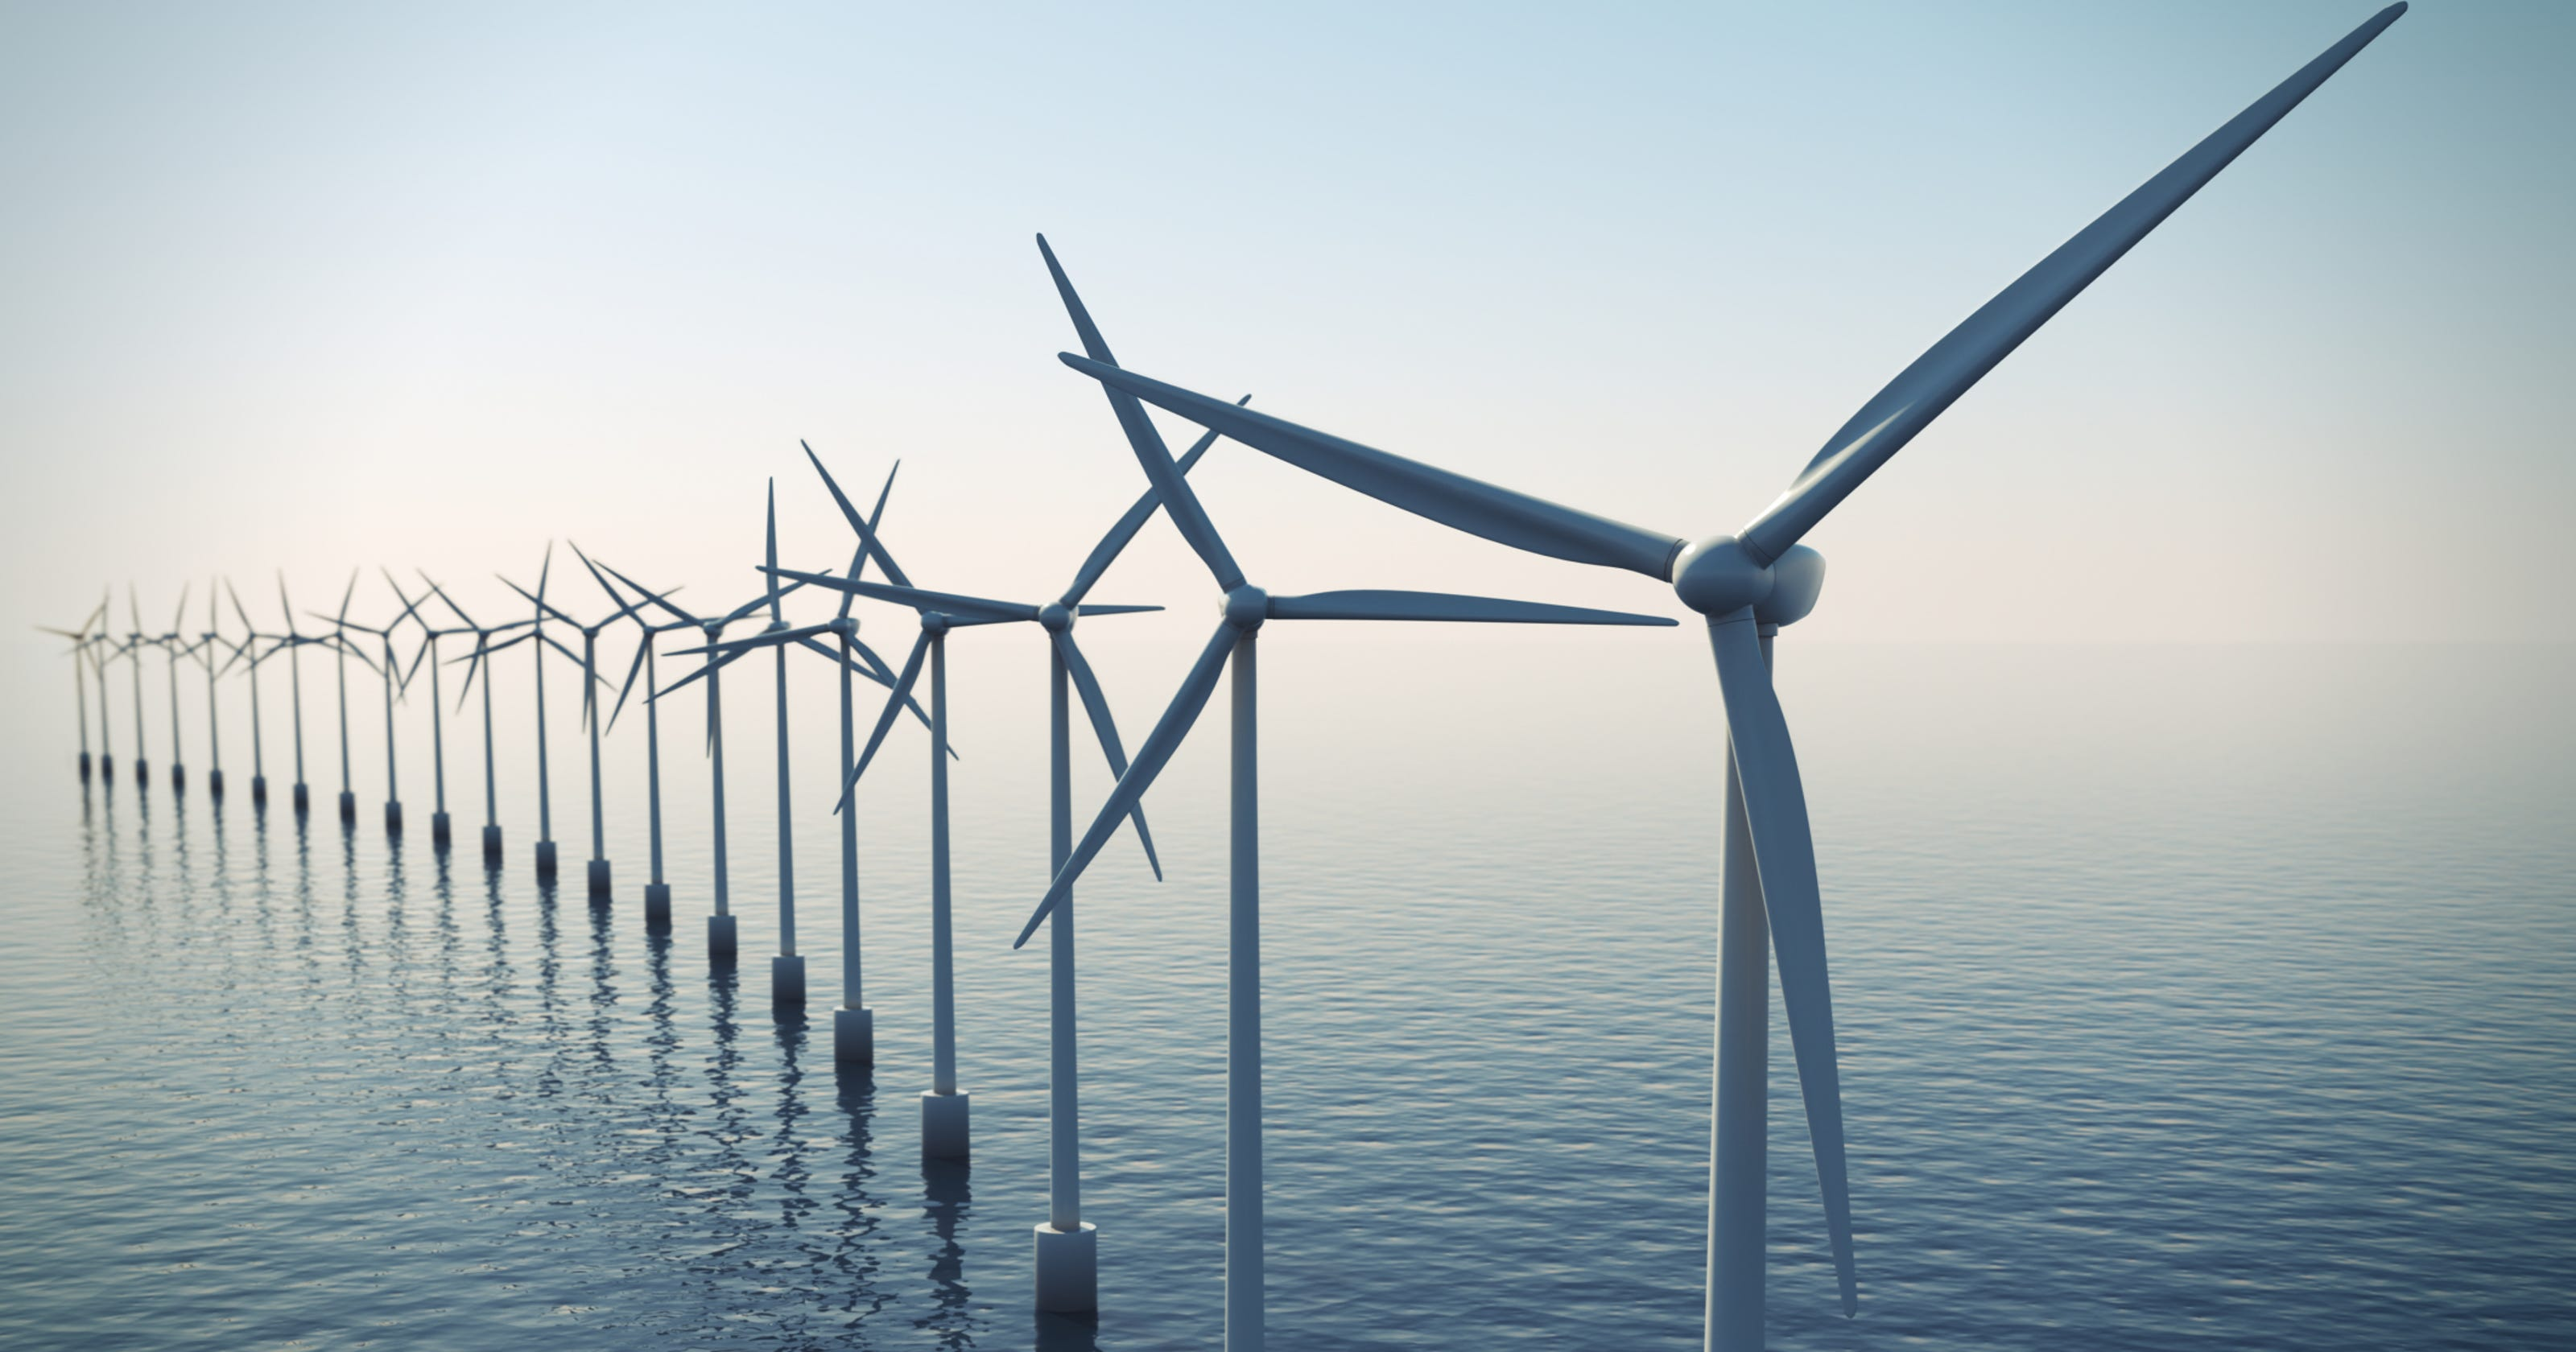 Delaware's involvement in offshore wind energy remains uncertain